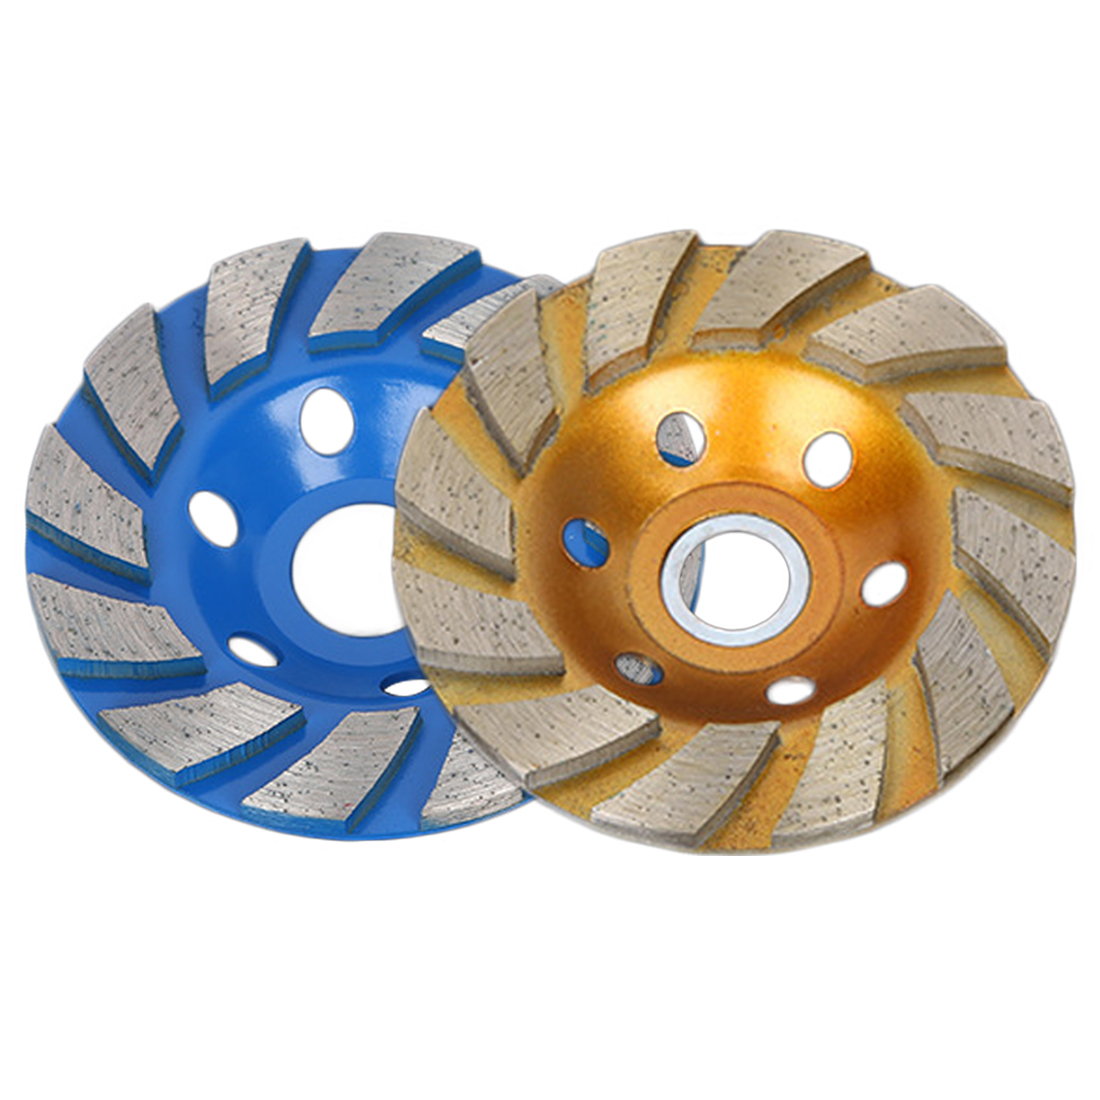 Exquisite Polishing Abrasive Wheel New 100mm Diamond Grinding Wheel Disc Concrete Masonry Granite Stone Tool